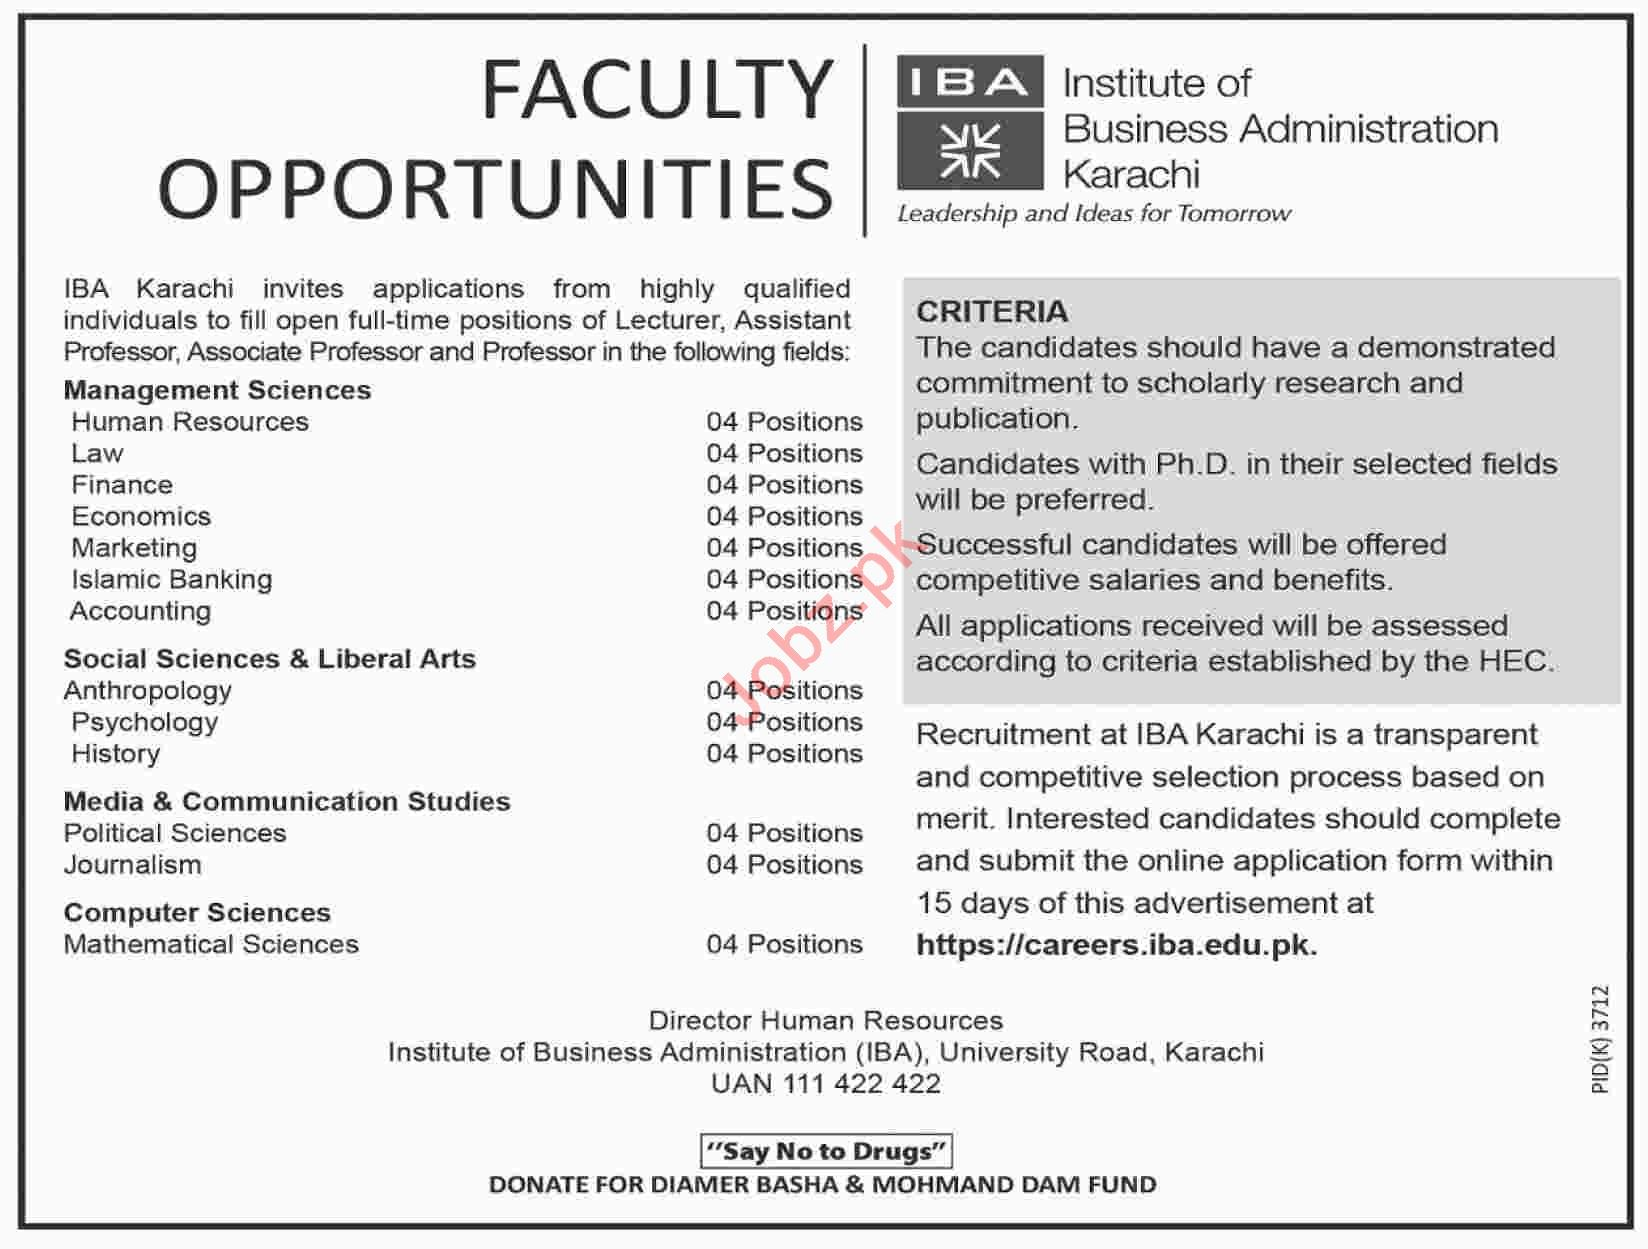 Institute of Business Administration Faculty Jobs 2019